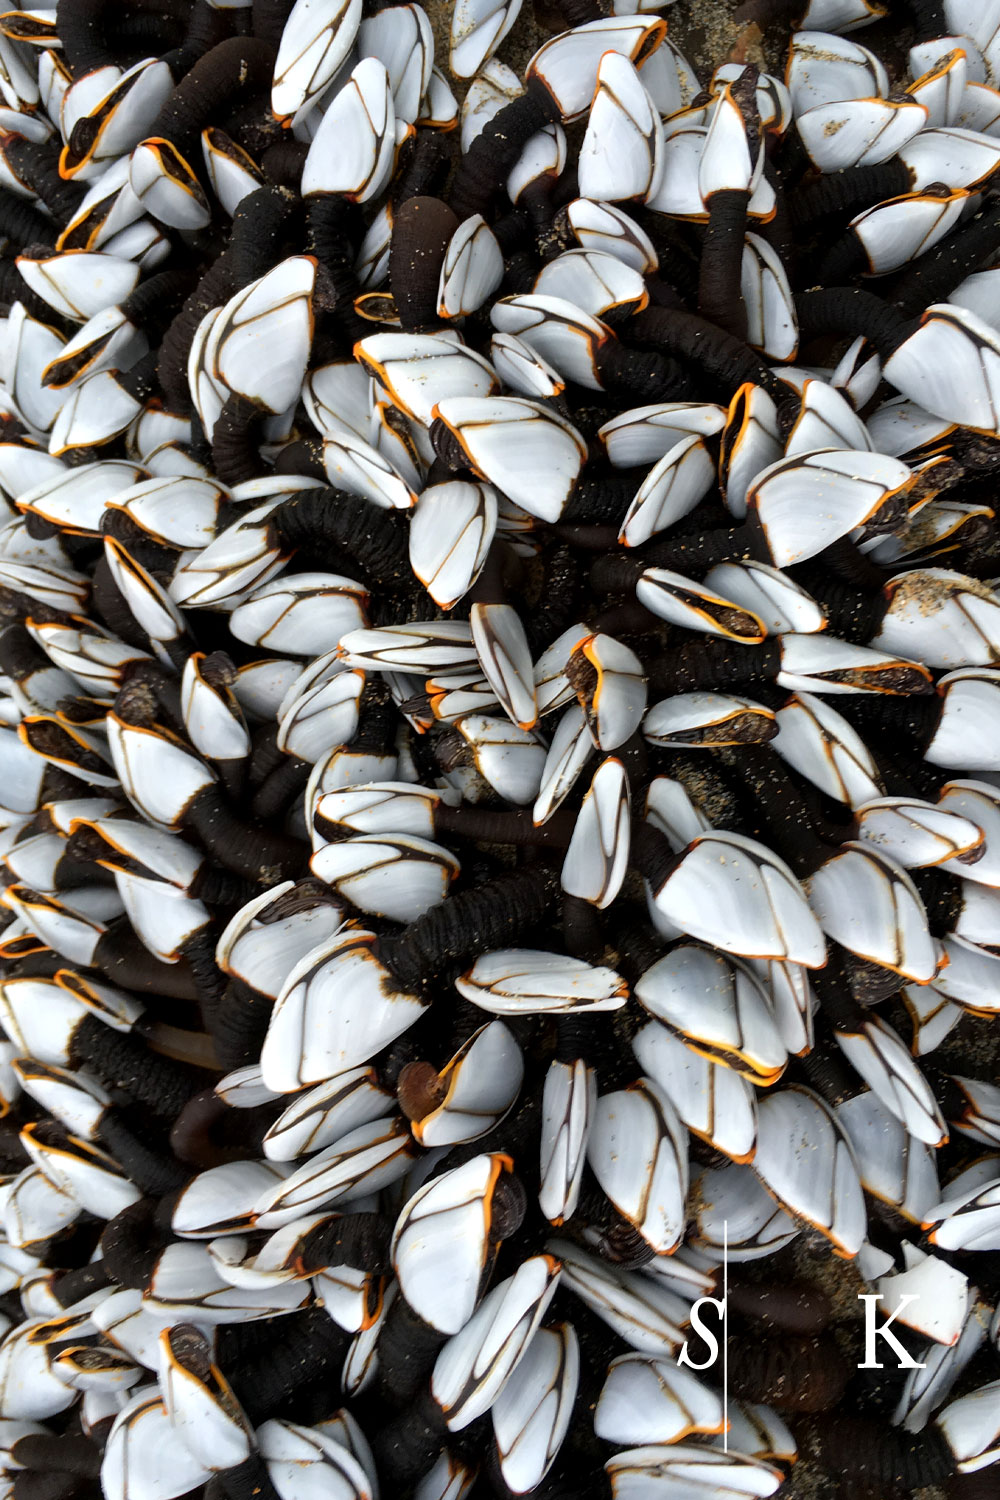 Goose Barnacle on the beach Perranporth Cornwall